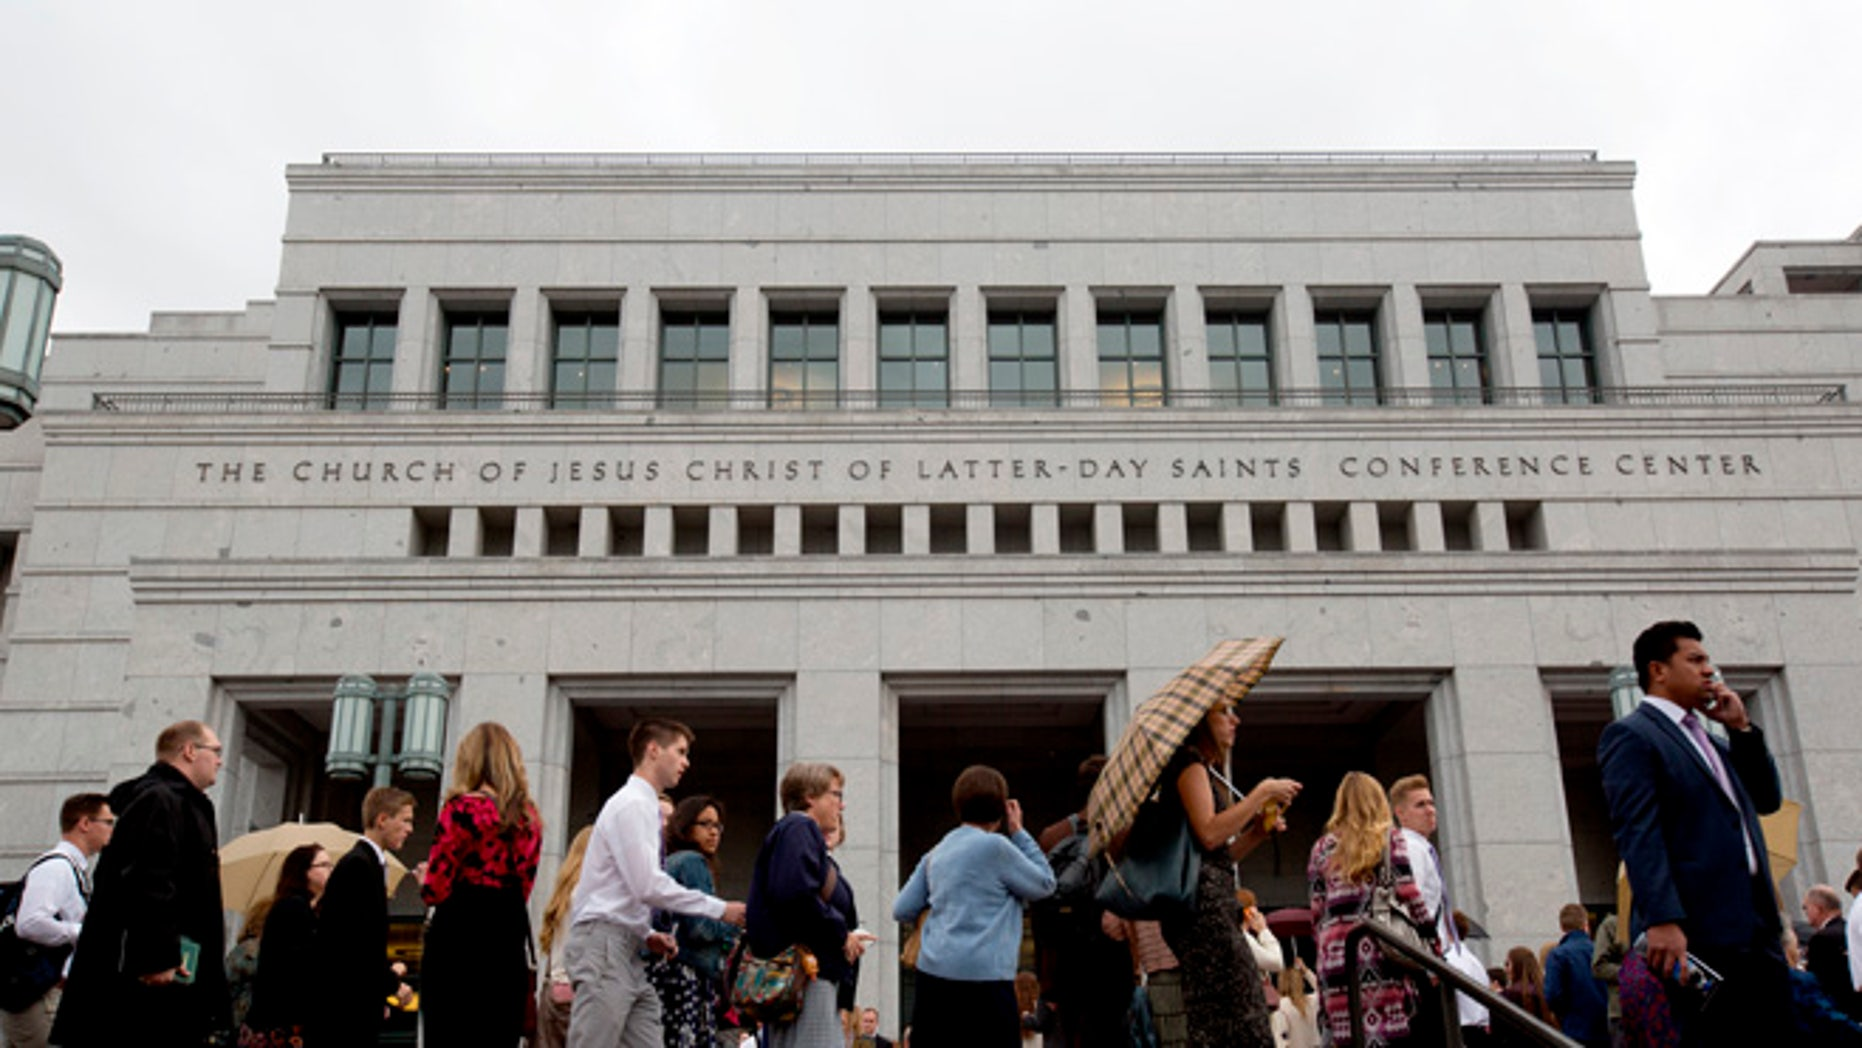 People arrive for the opening session of the two-day Mormon church conference at the LDS Conference Center, Saturday, Oct. 3, 2015, in Salt Lake City. As many as three new high-ranking Mormon leaders could be named during the weekendâs church conference to fill vacancies on a governing body that sets church policy and run the faithâs business operations.  (AP Photo/Kim Raff)